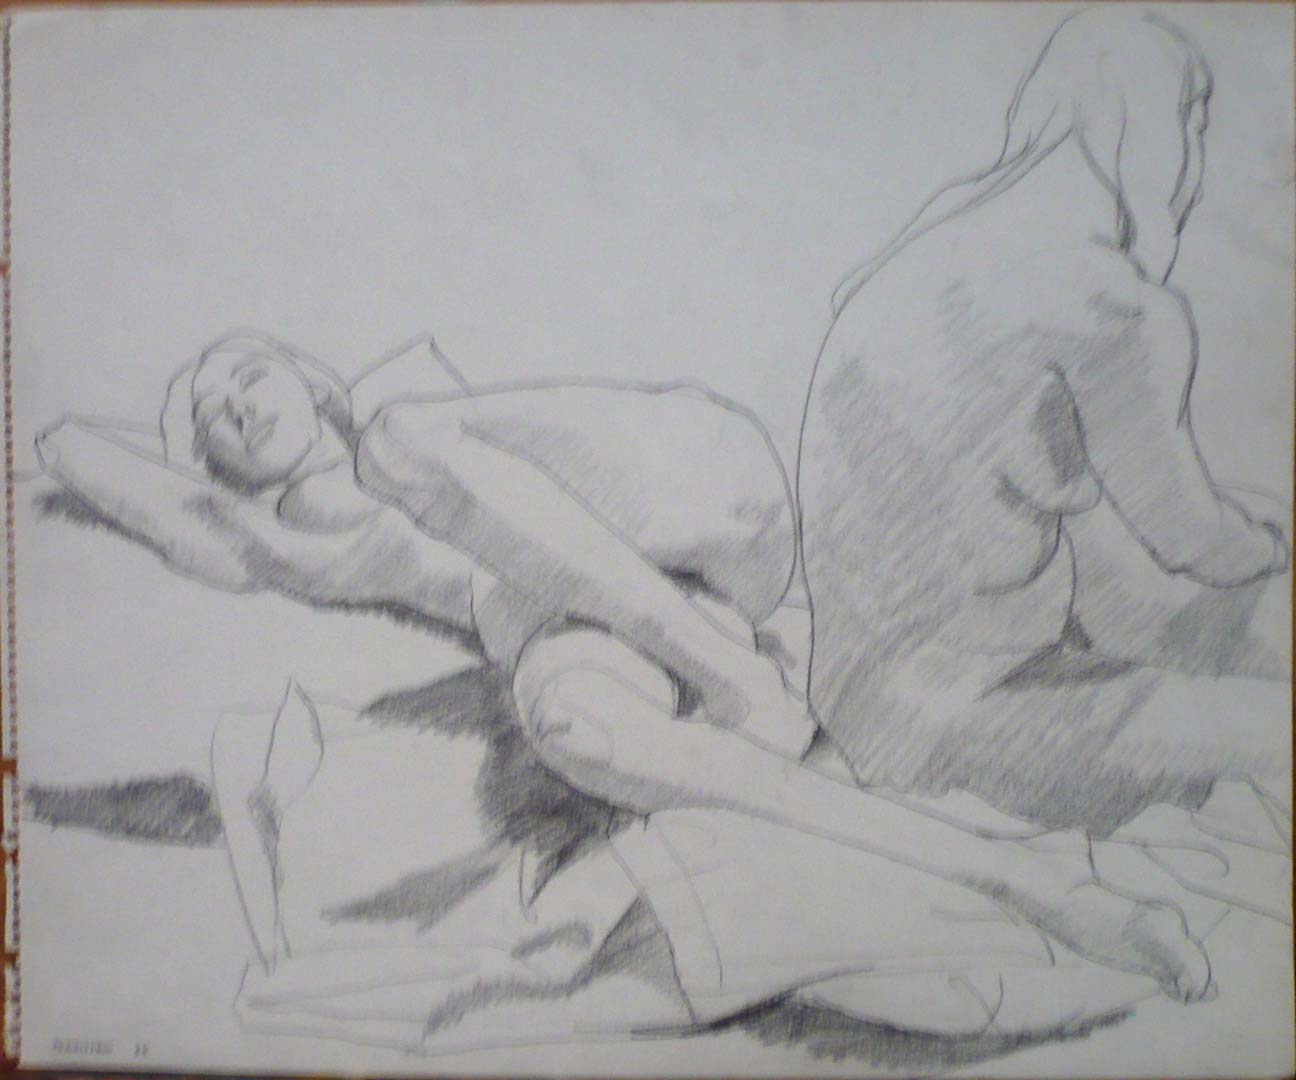 1964 Two Female Models on Drape Pencil 13.875 x 16.875